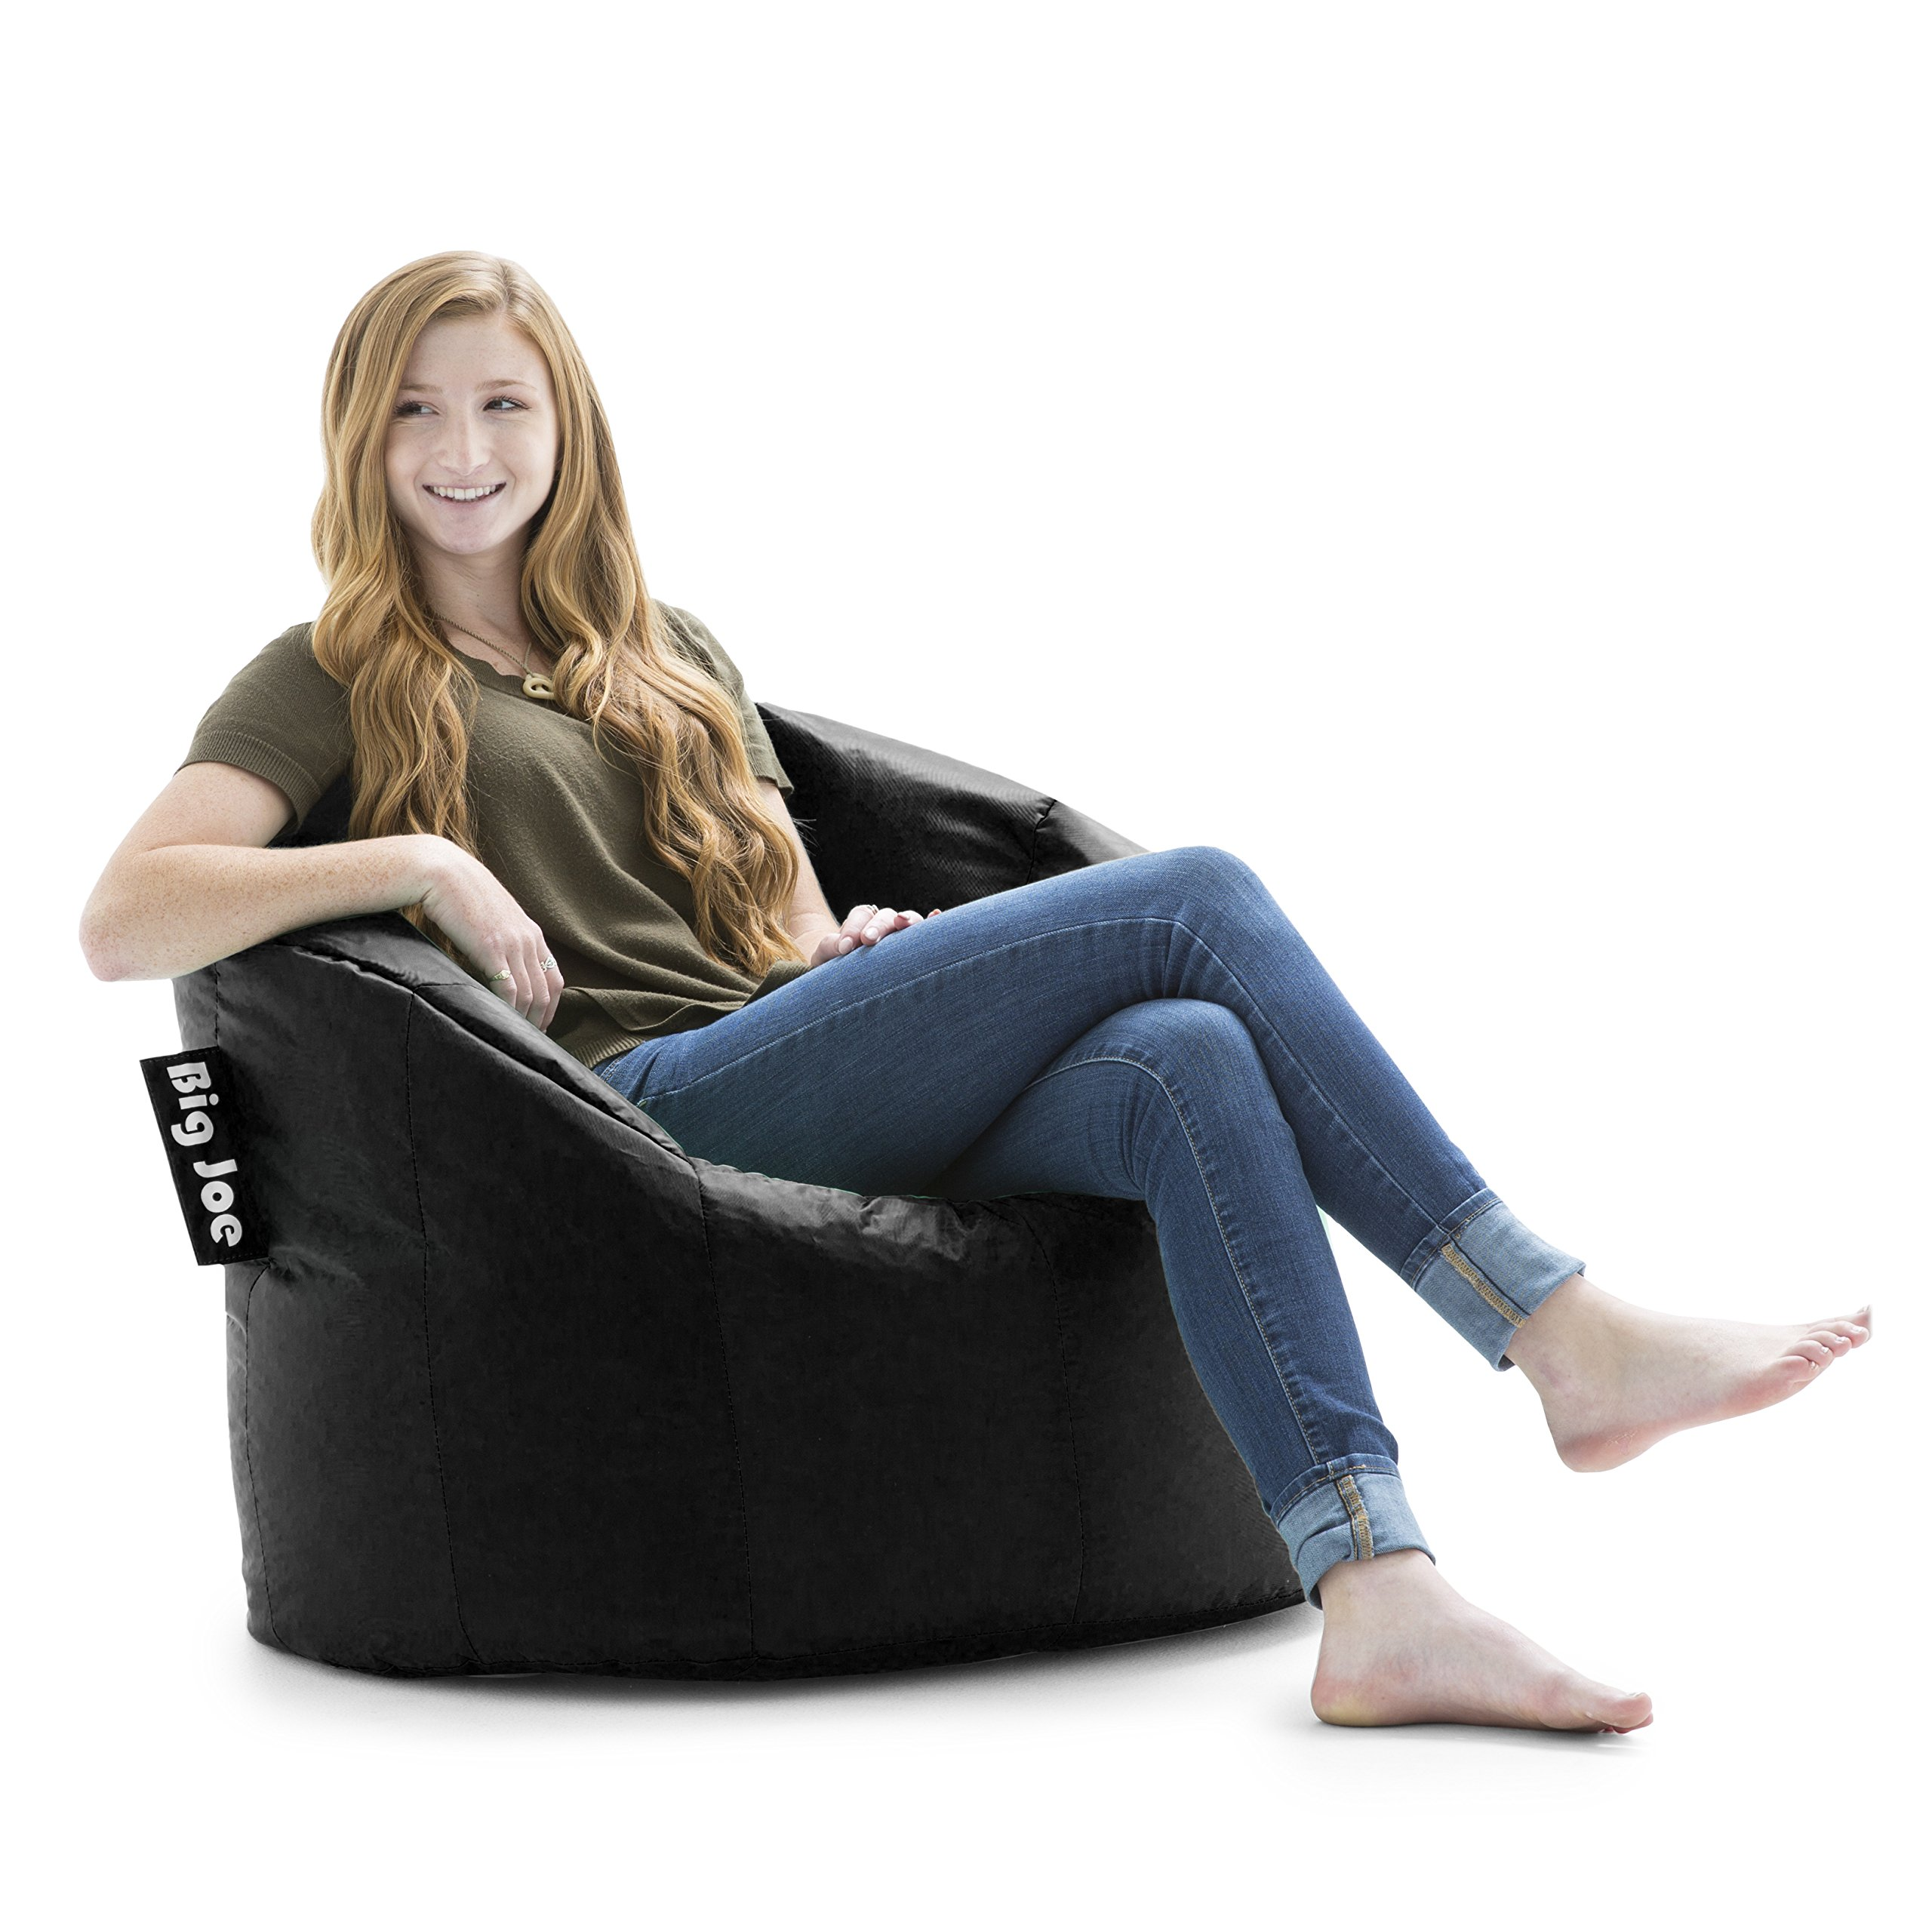 Big Joe Milano Bean Bag Chair, Stretch Limo Black